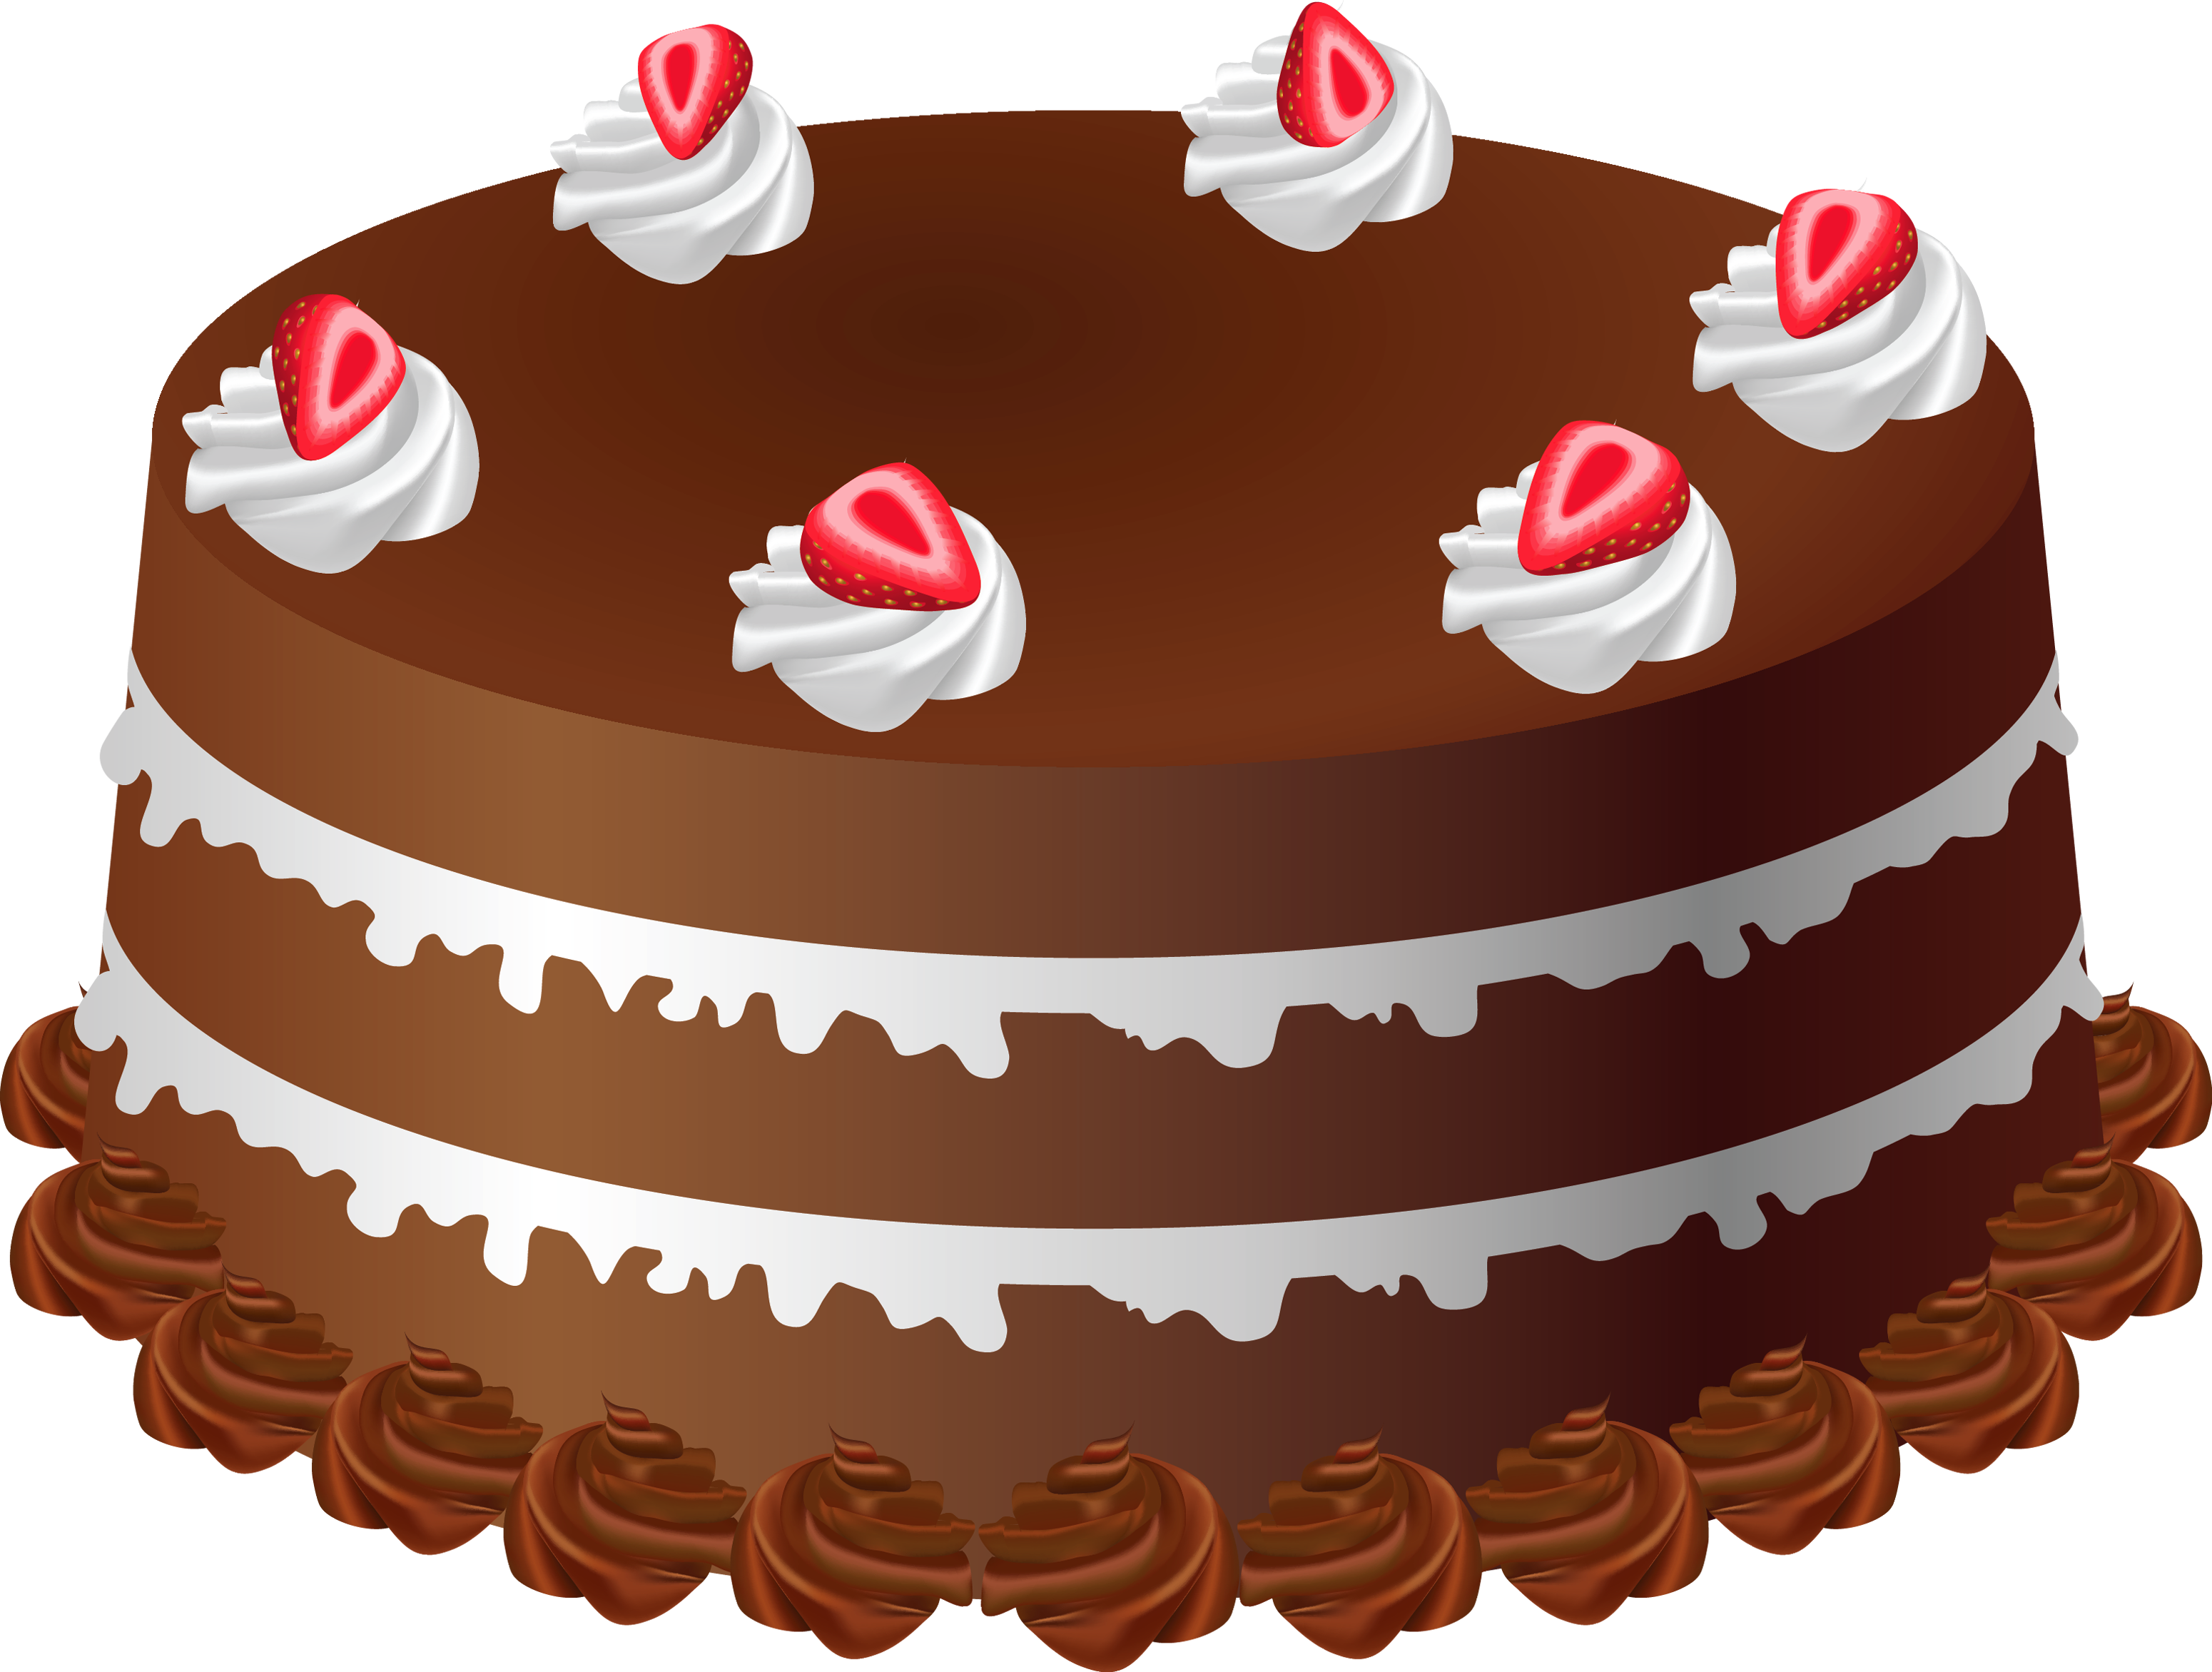 Cake clipart no background clip art black and white Birthday cake Chocolate cake Clip art - Chocolate cake PNG png ... clip art black and white